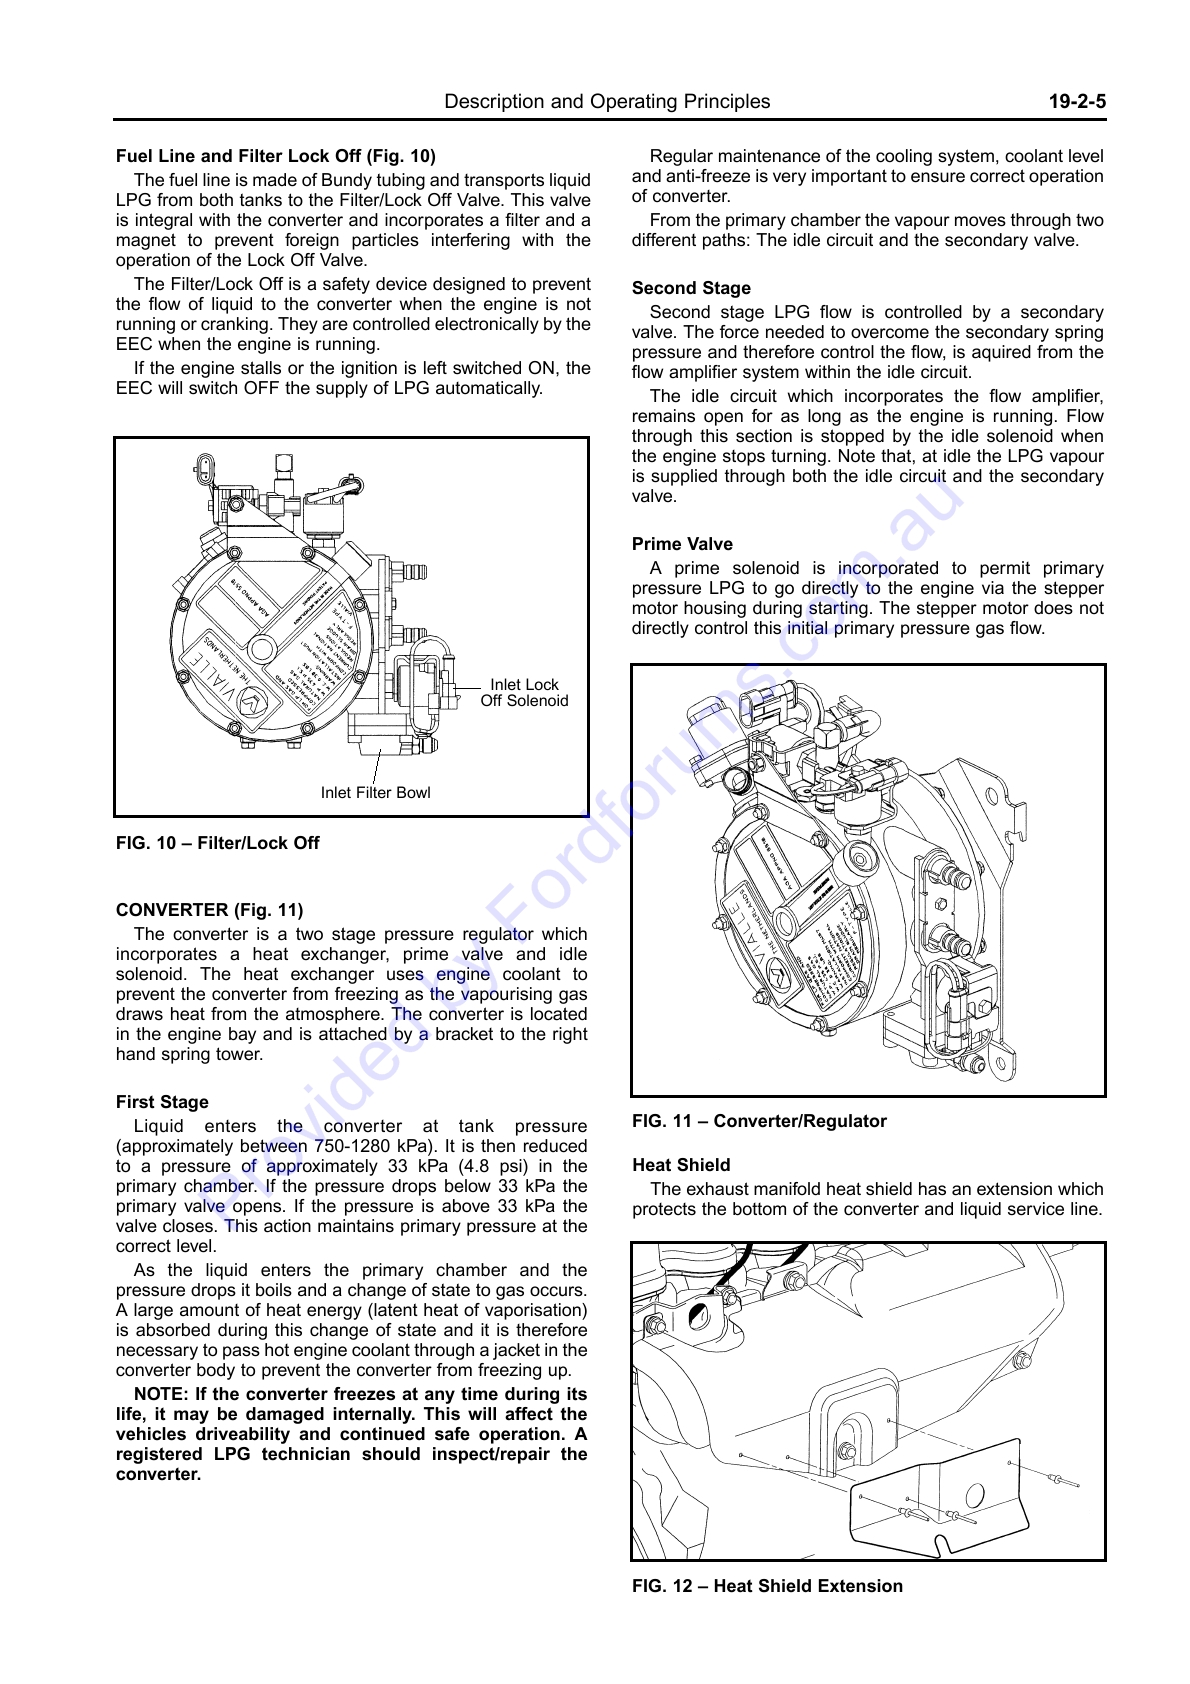 au wsm page 1 of 8 rh fordforums com au Service ManualsOnline Parts Manual